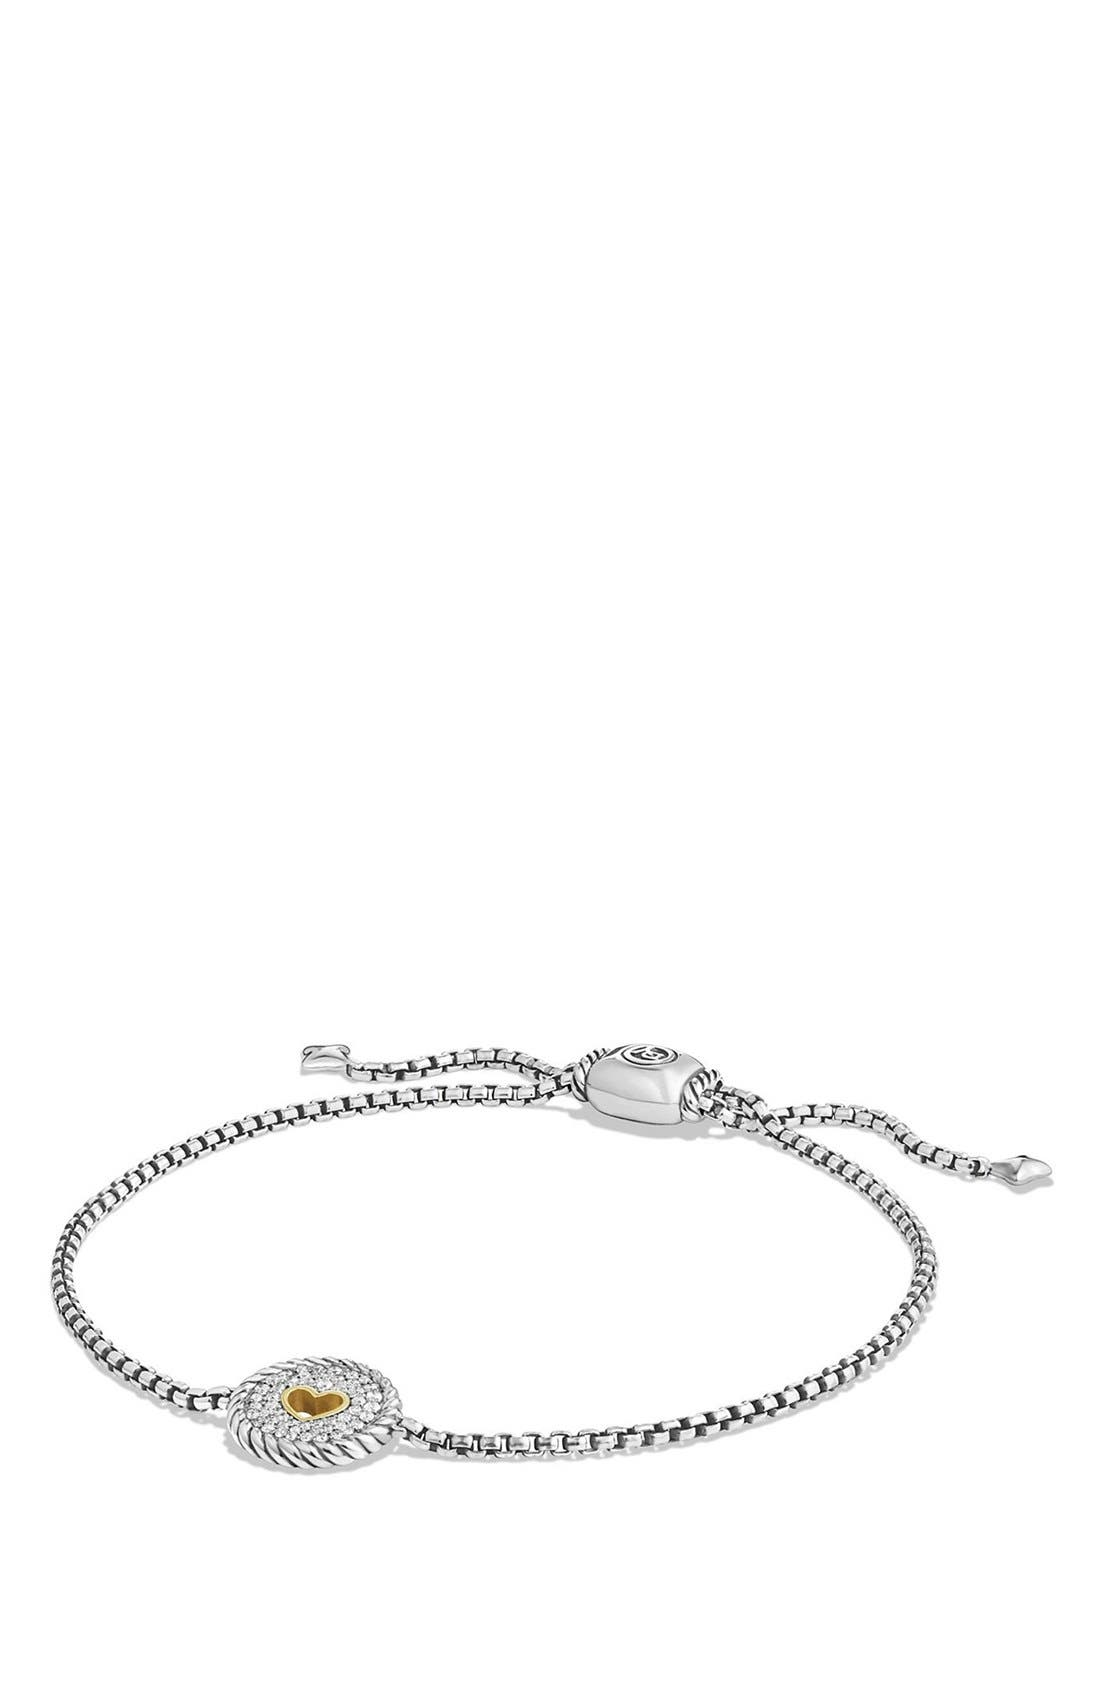 Alternate Image 1 Selected - David Yurman 'Cable Collectibles' Heart Station Bracelet with Diamonds